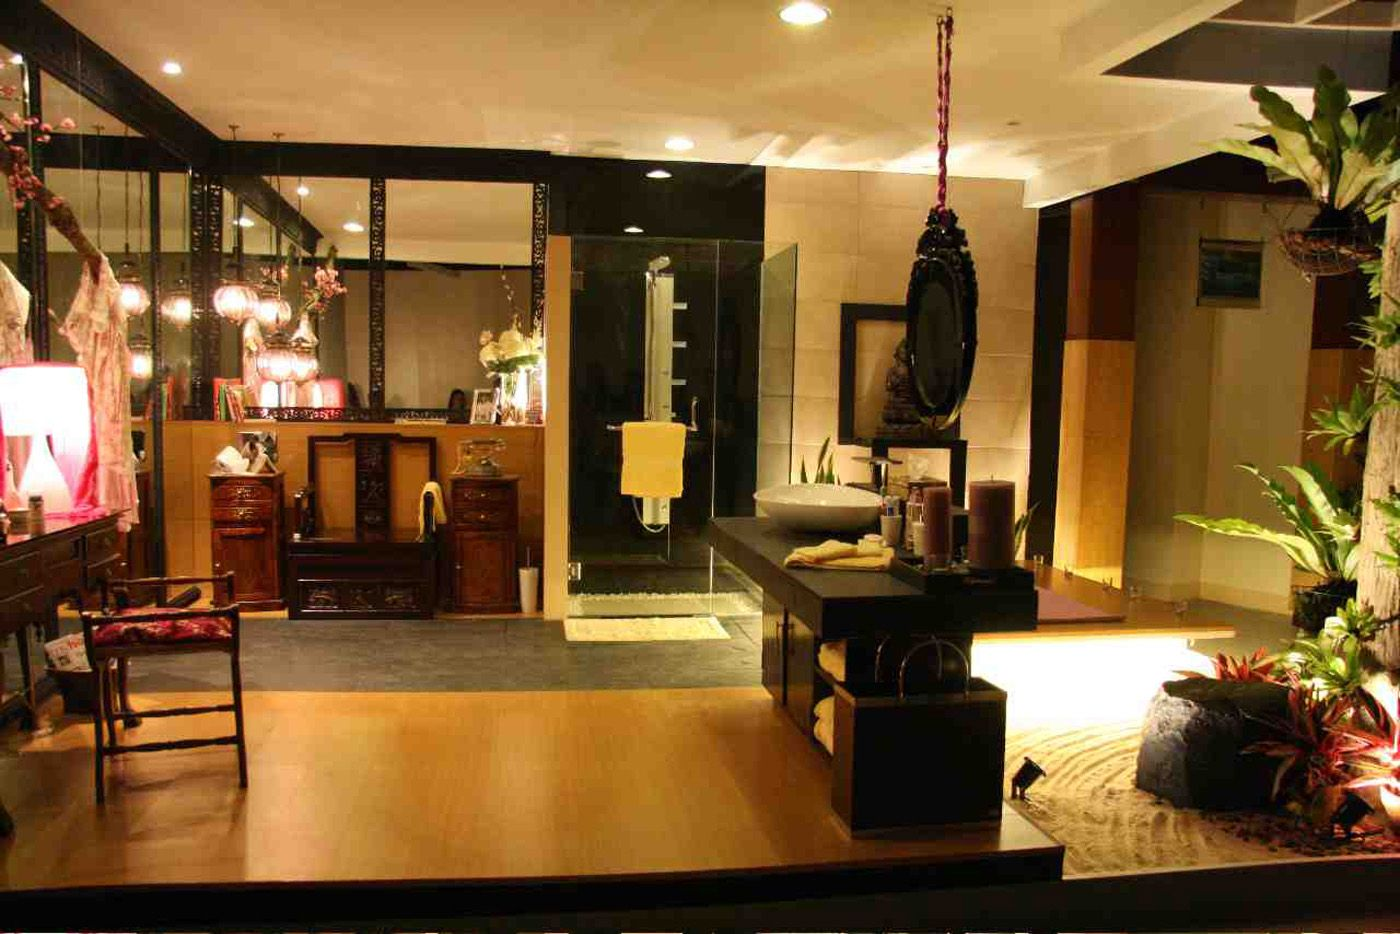 Asian Interior Decorating Ideas - http://www.dalahoo.co/5624/asian-interior-decorating-ideas/ #homeideas #homedesign #homedecor